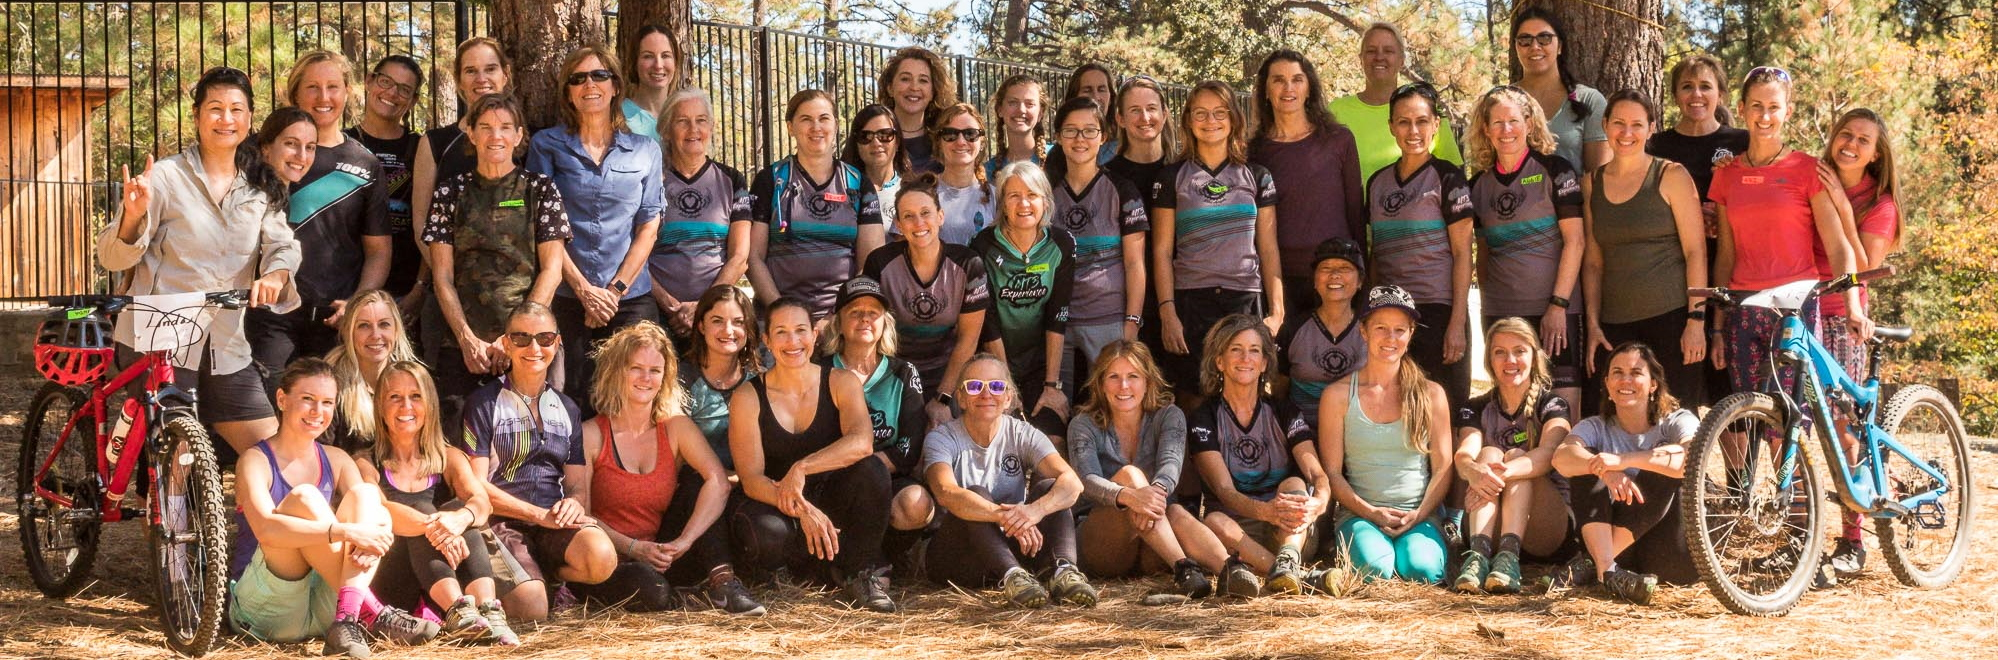 YBONC's Women's Mountain Bike Clinic